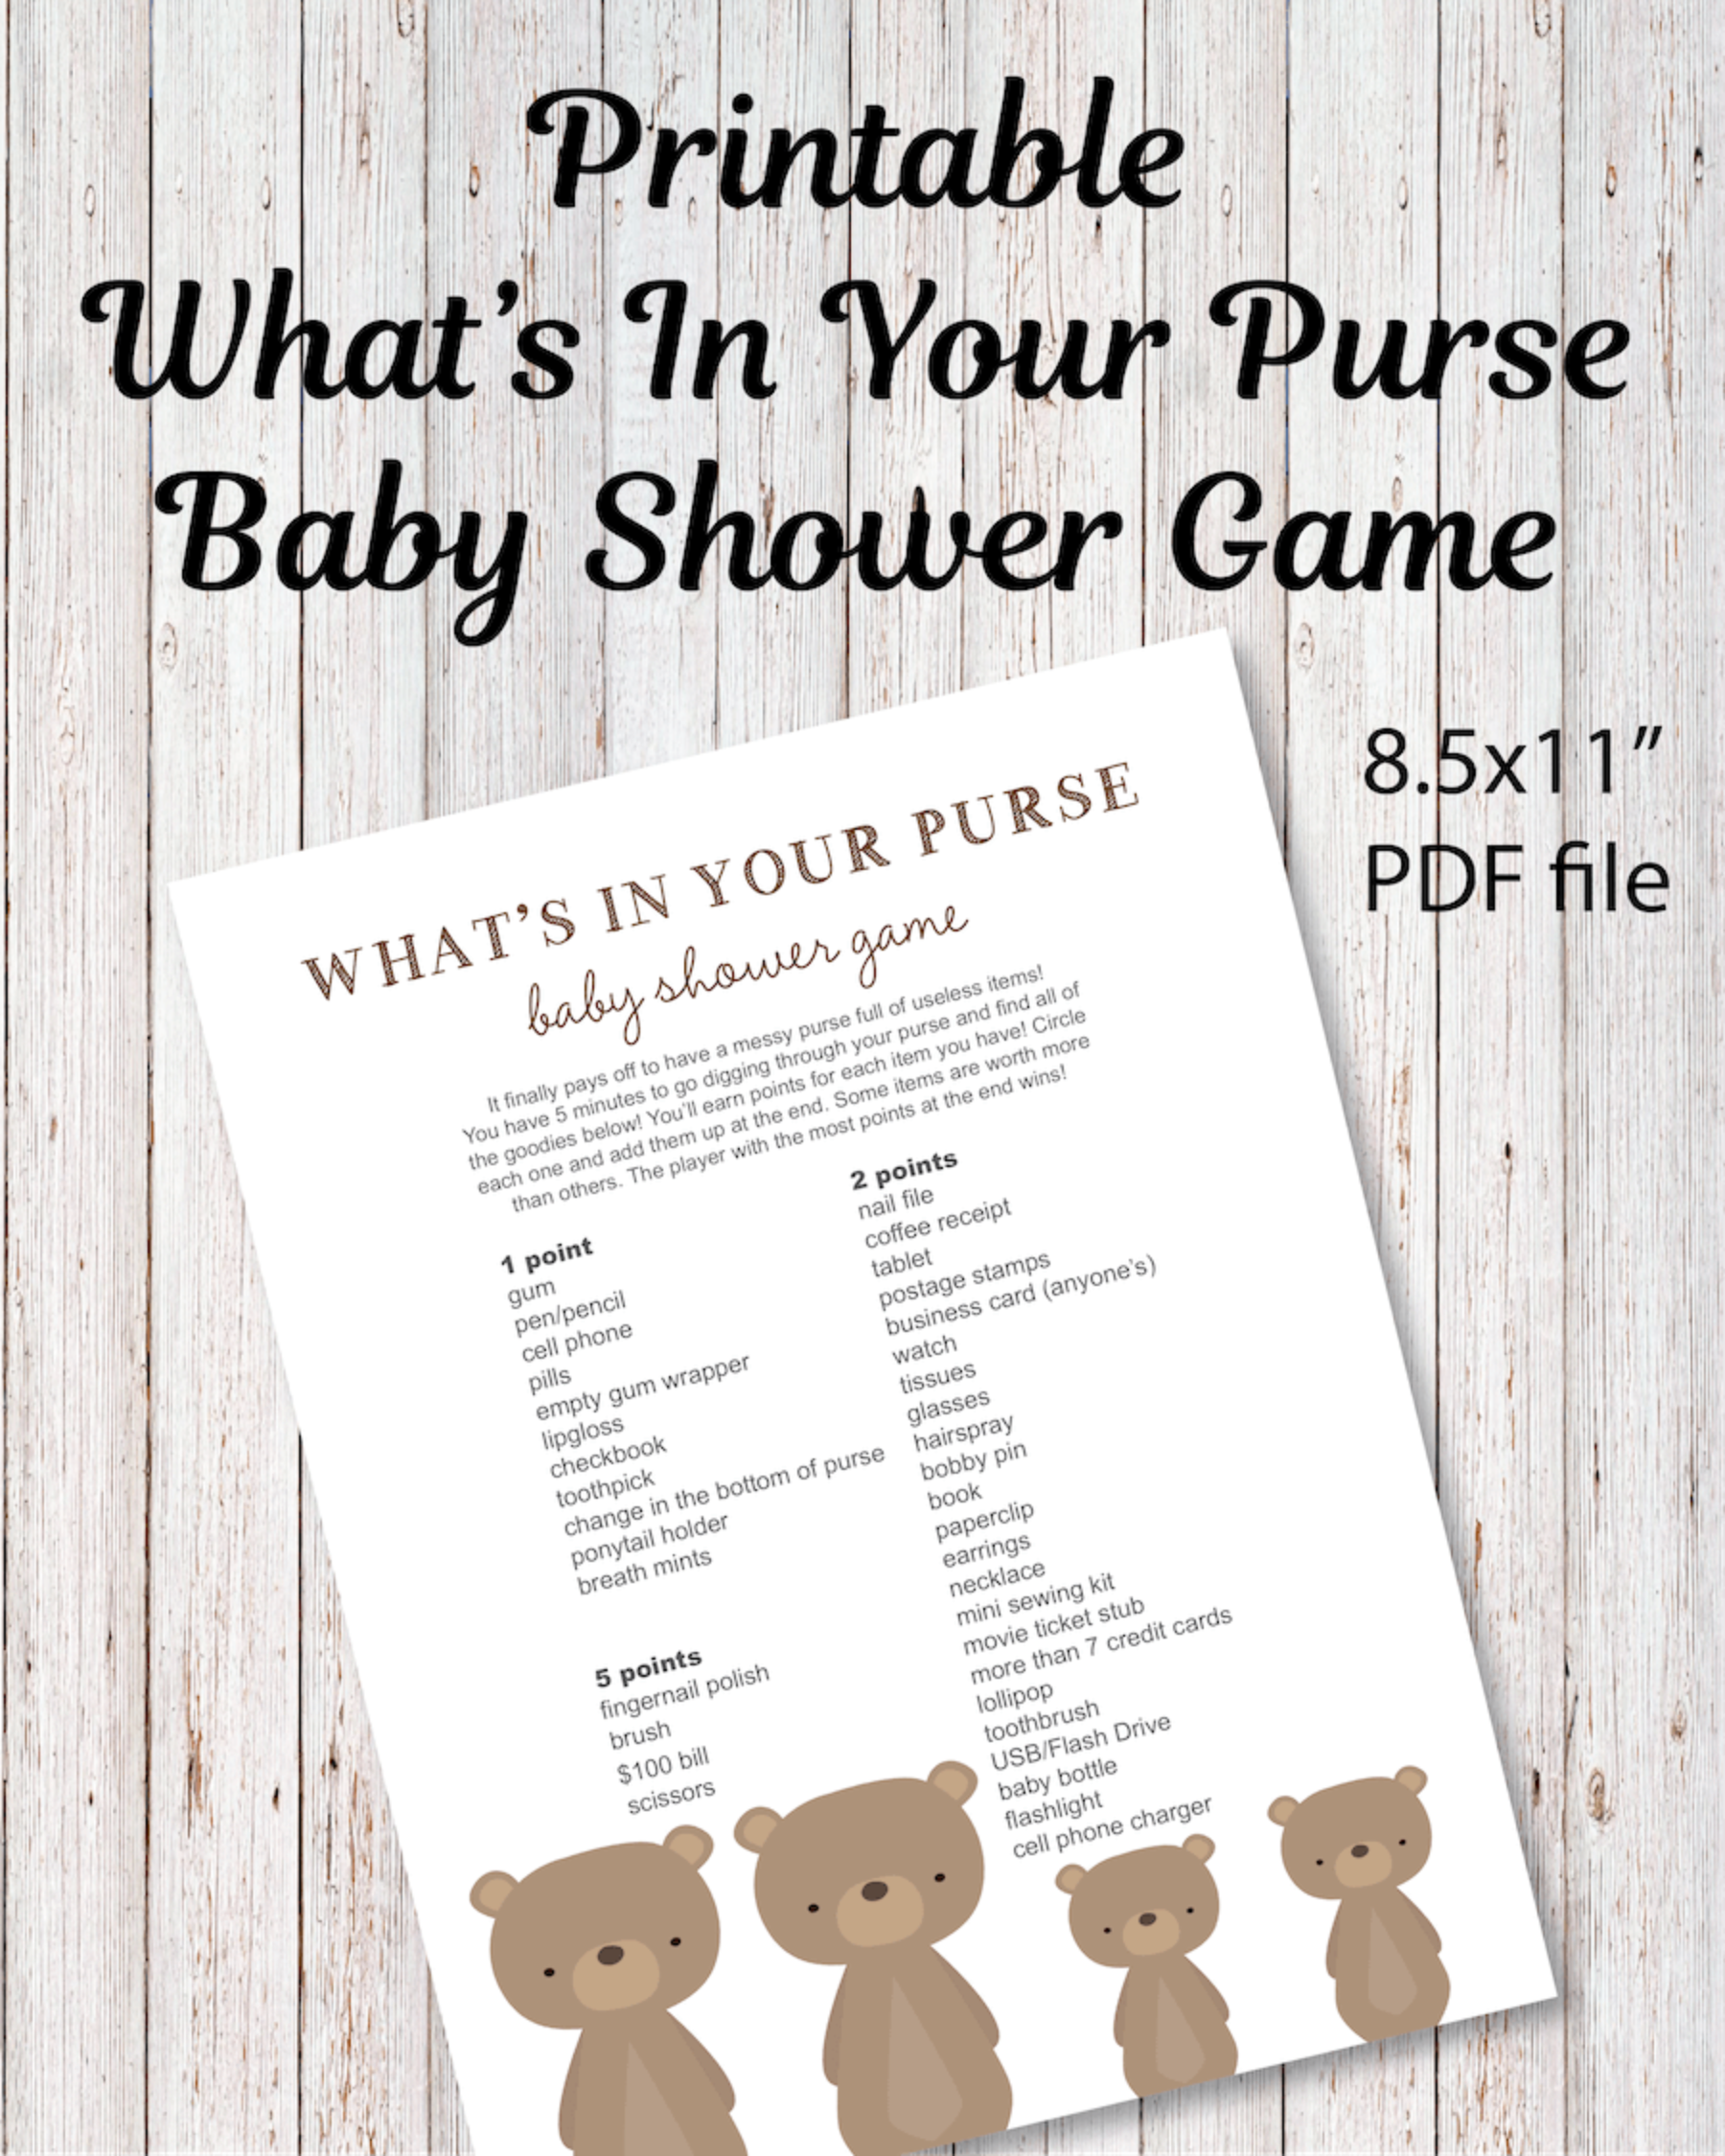 Printable What's In Your Purse Baby Shower Game - Woodland Bear Theme